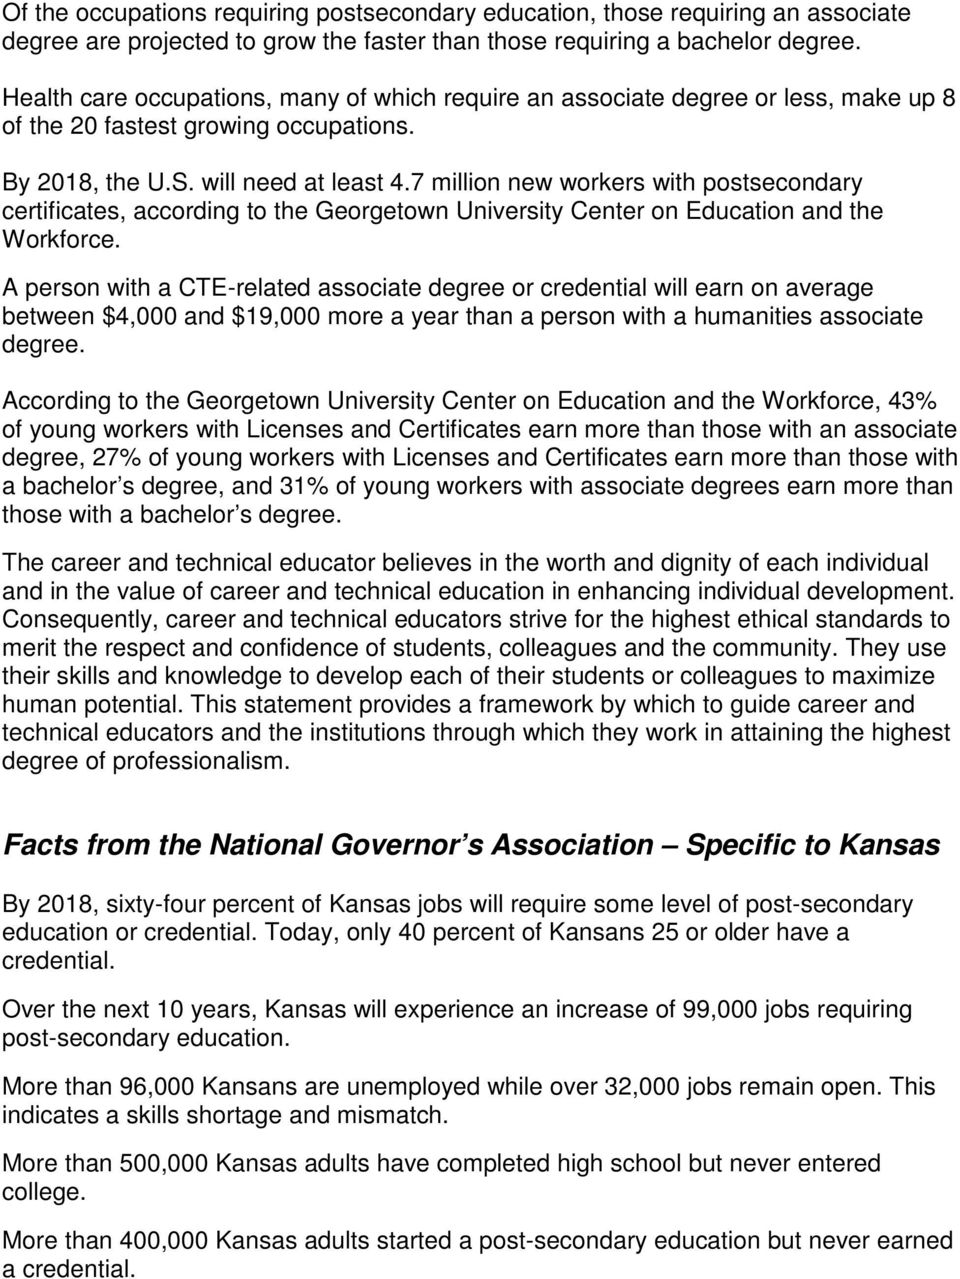 7 million new workers with postsecondary certificates, according to the Georgetown University Center on Education and the Workforce.